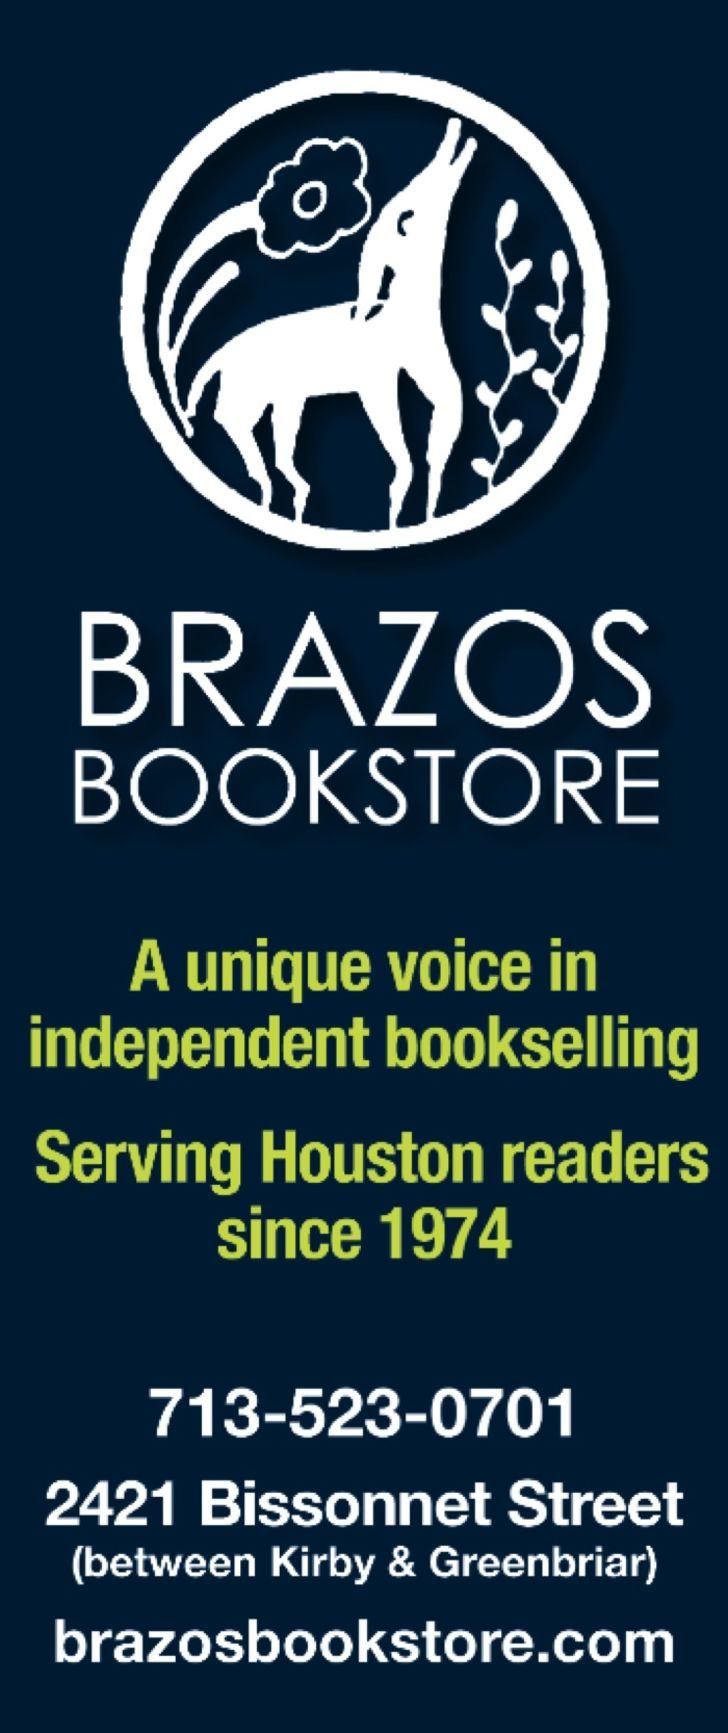 Brazos Bookstore